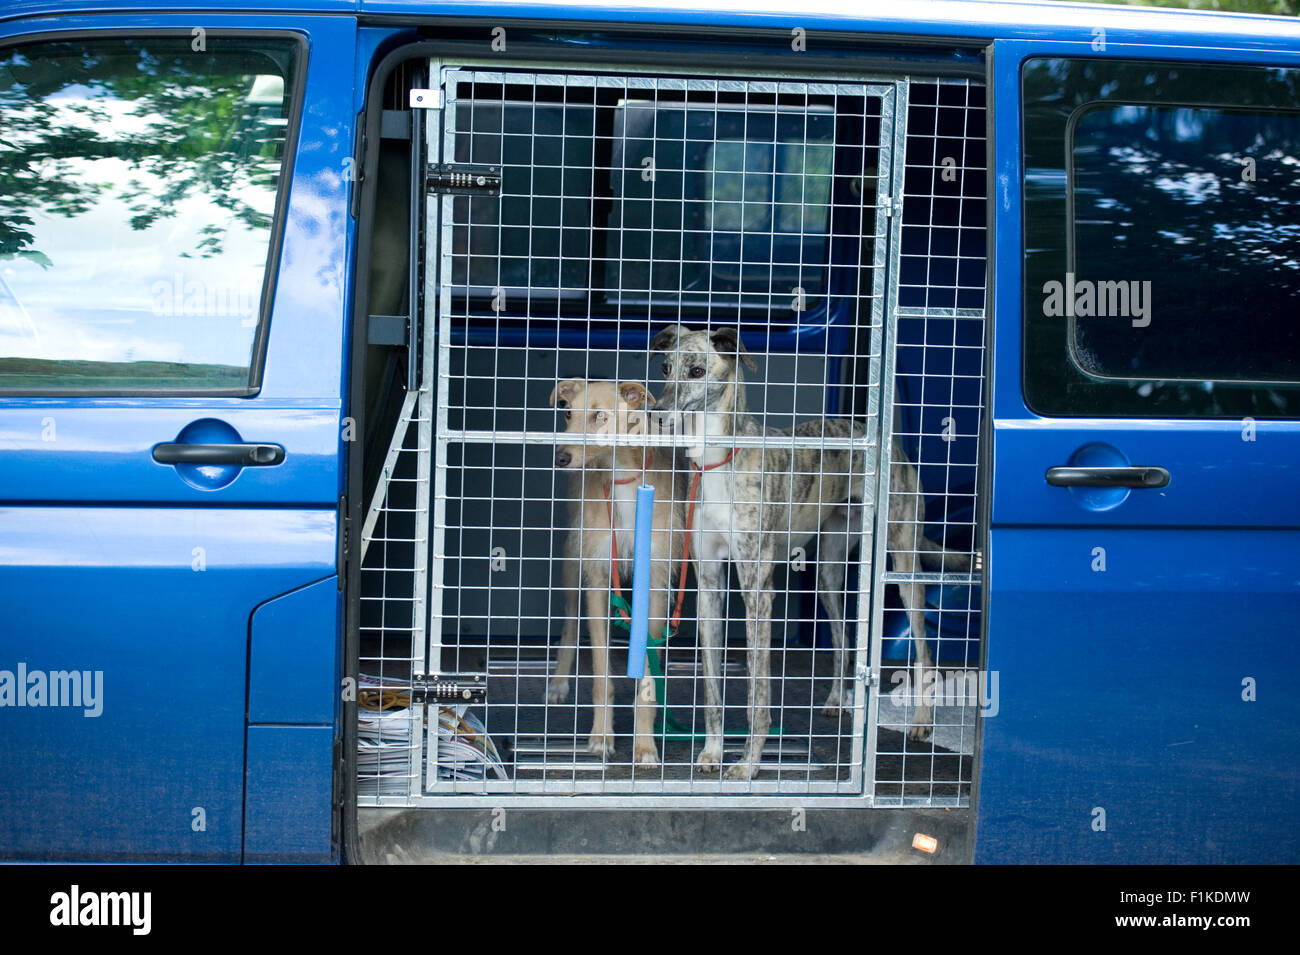 two dogs secured in a vehicle - Stock Image